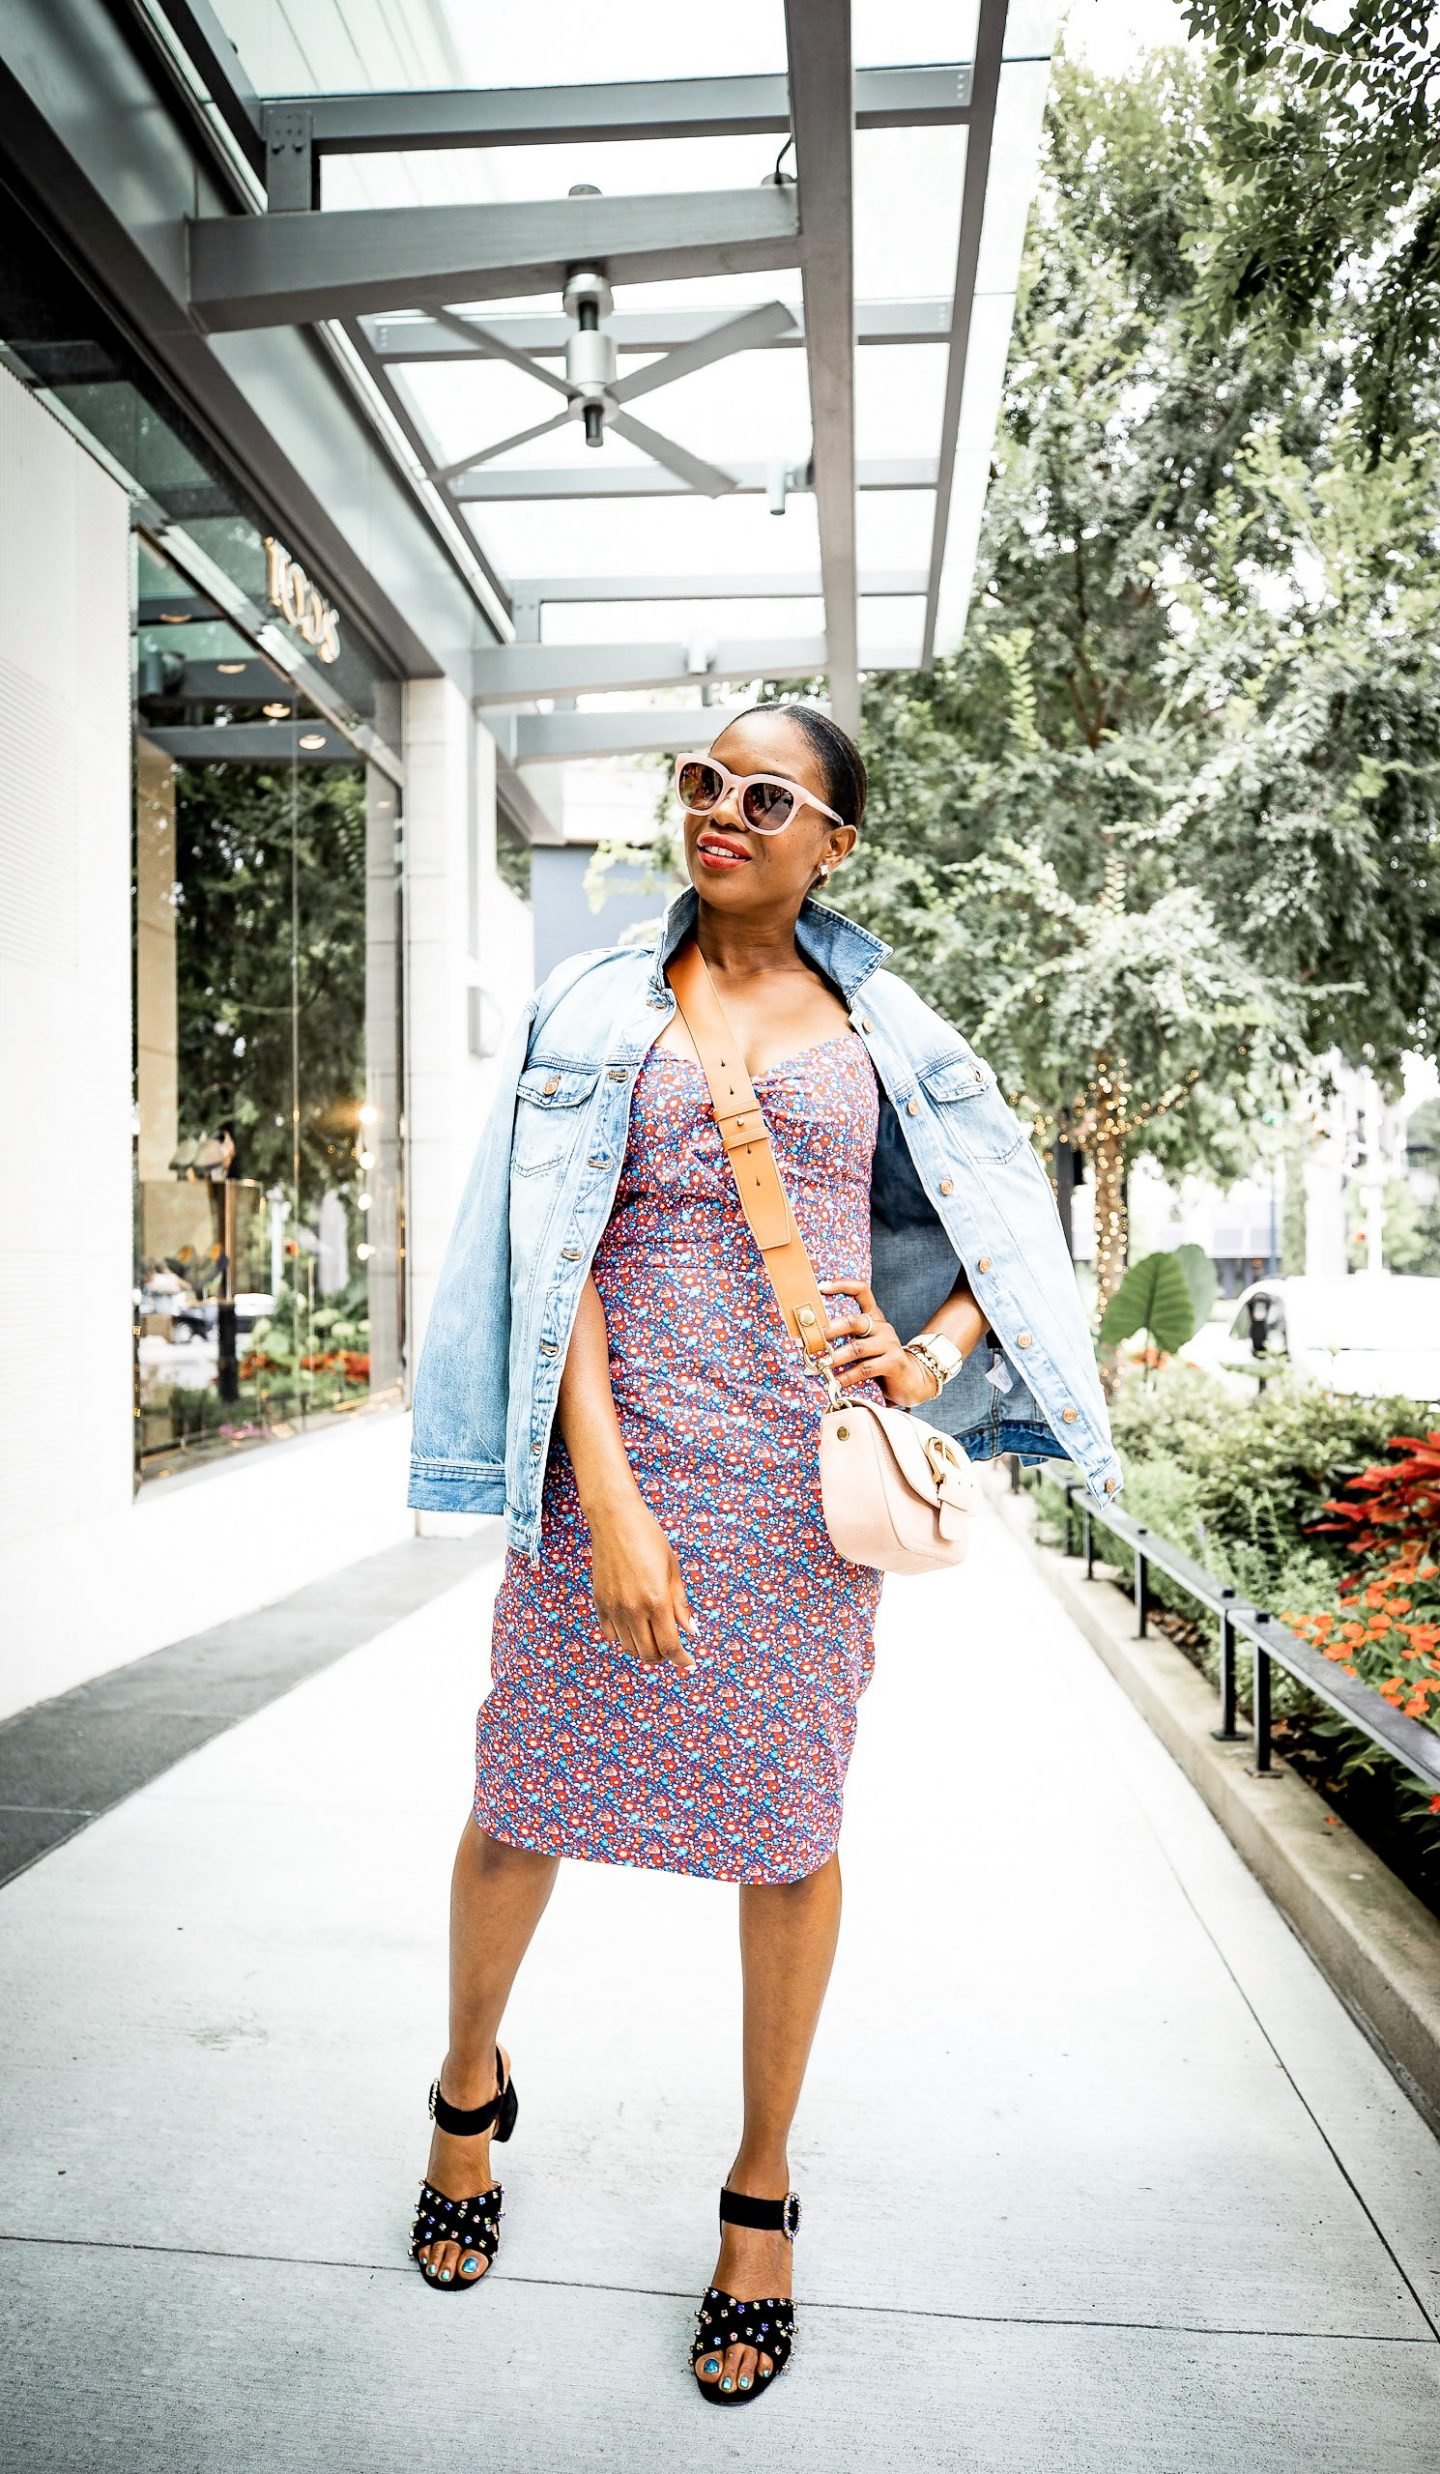 Lifestyle blogger Monica Awe-Etuk of Awed by Monica wearing J.Crew floral dress, denim jacket and black suede sandals for fall fashion